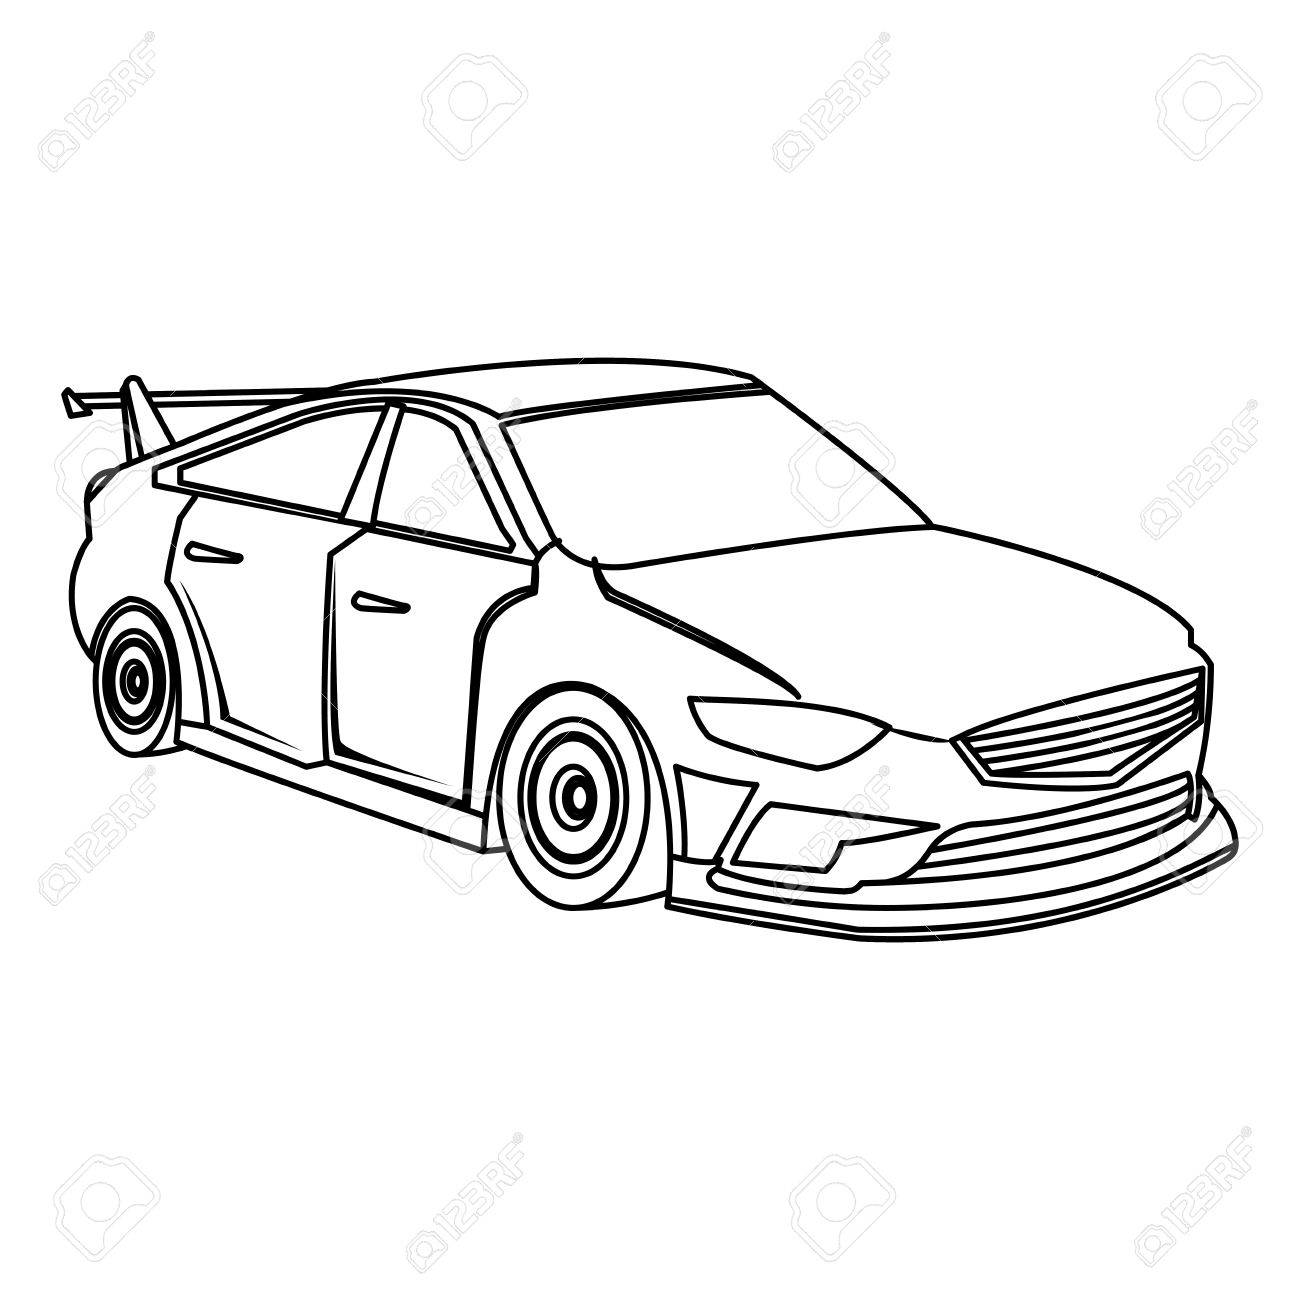 1300x1300 Sport Car Luxury Speed Vehicle Outline Vector Illustration Royalty